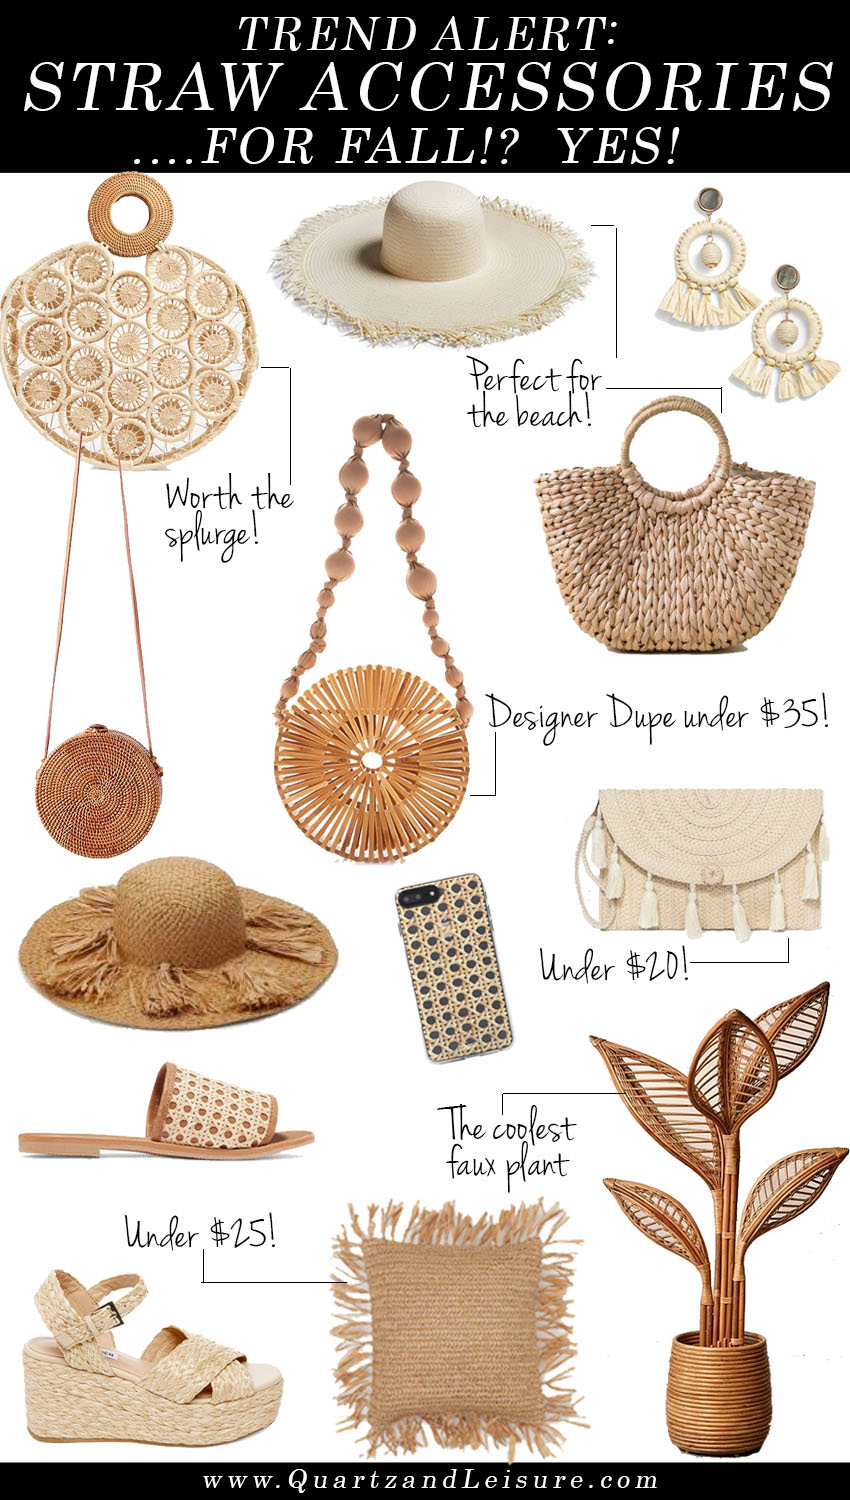 Straw Accessories, Straw Bag Dupes